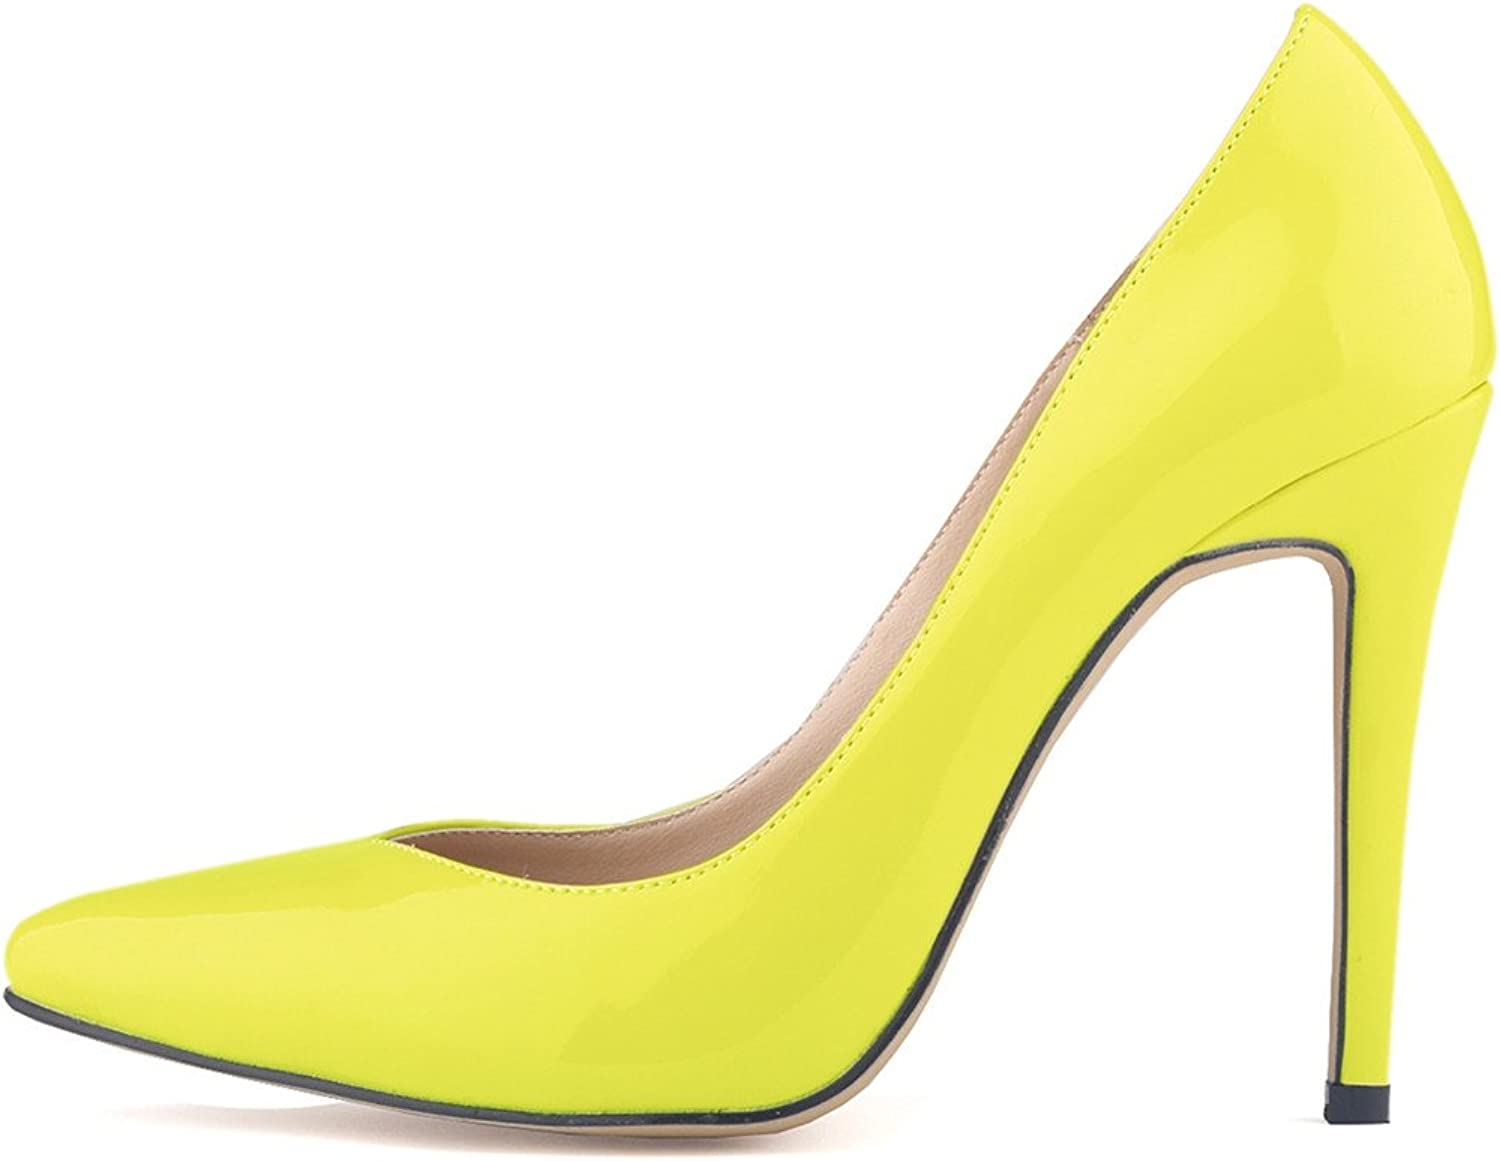 SAMSAY Women's High Heels Pointed Toe Stiletto Dress Pumps shoes